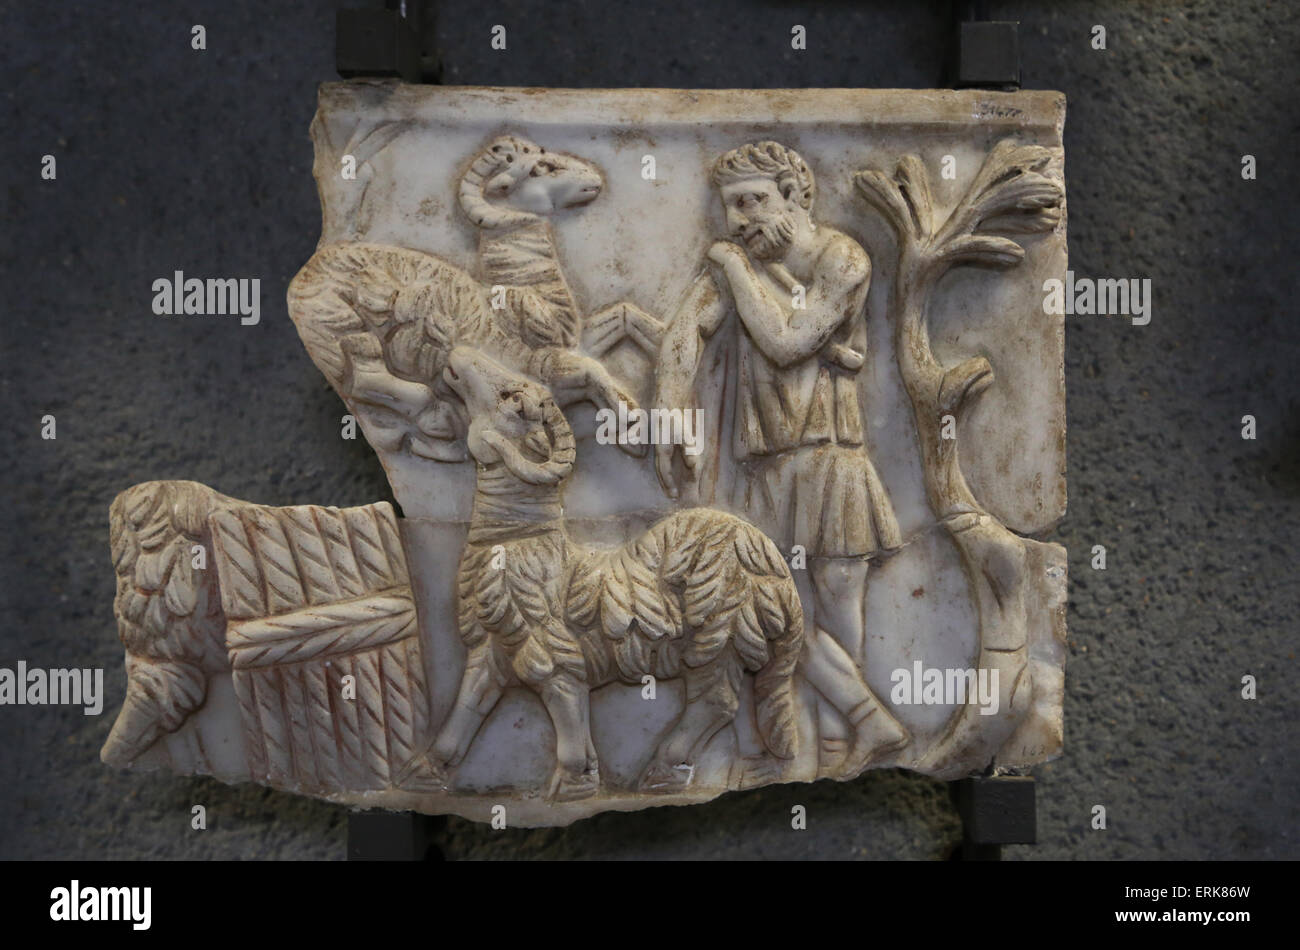 Early Christian. Roman sarcophagi. Shepherd between rams. Unknown. 3rd- 4th C. AD. Vatican Museums. - Stock Image